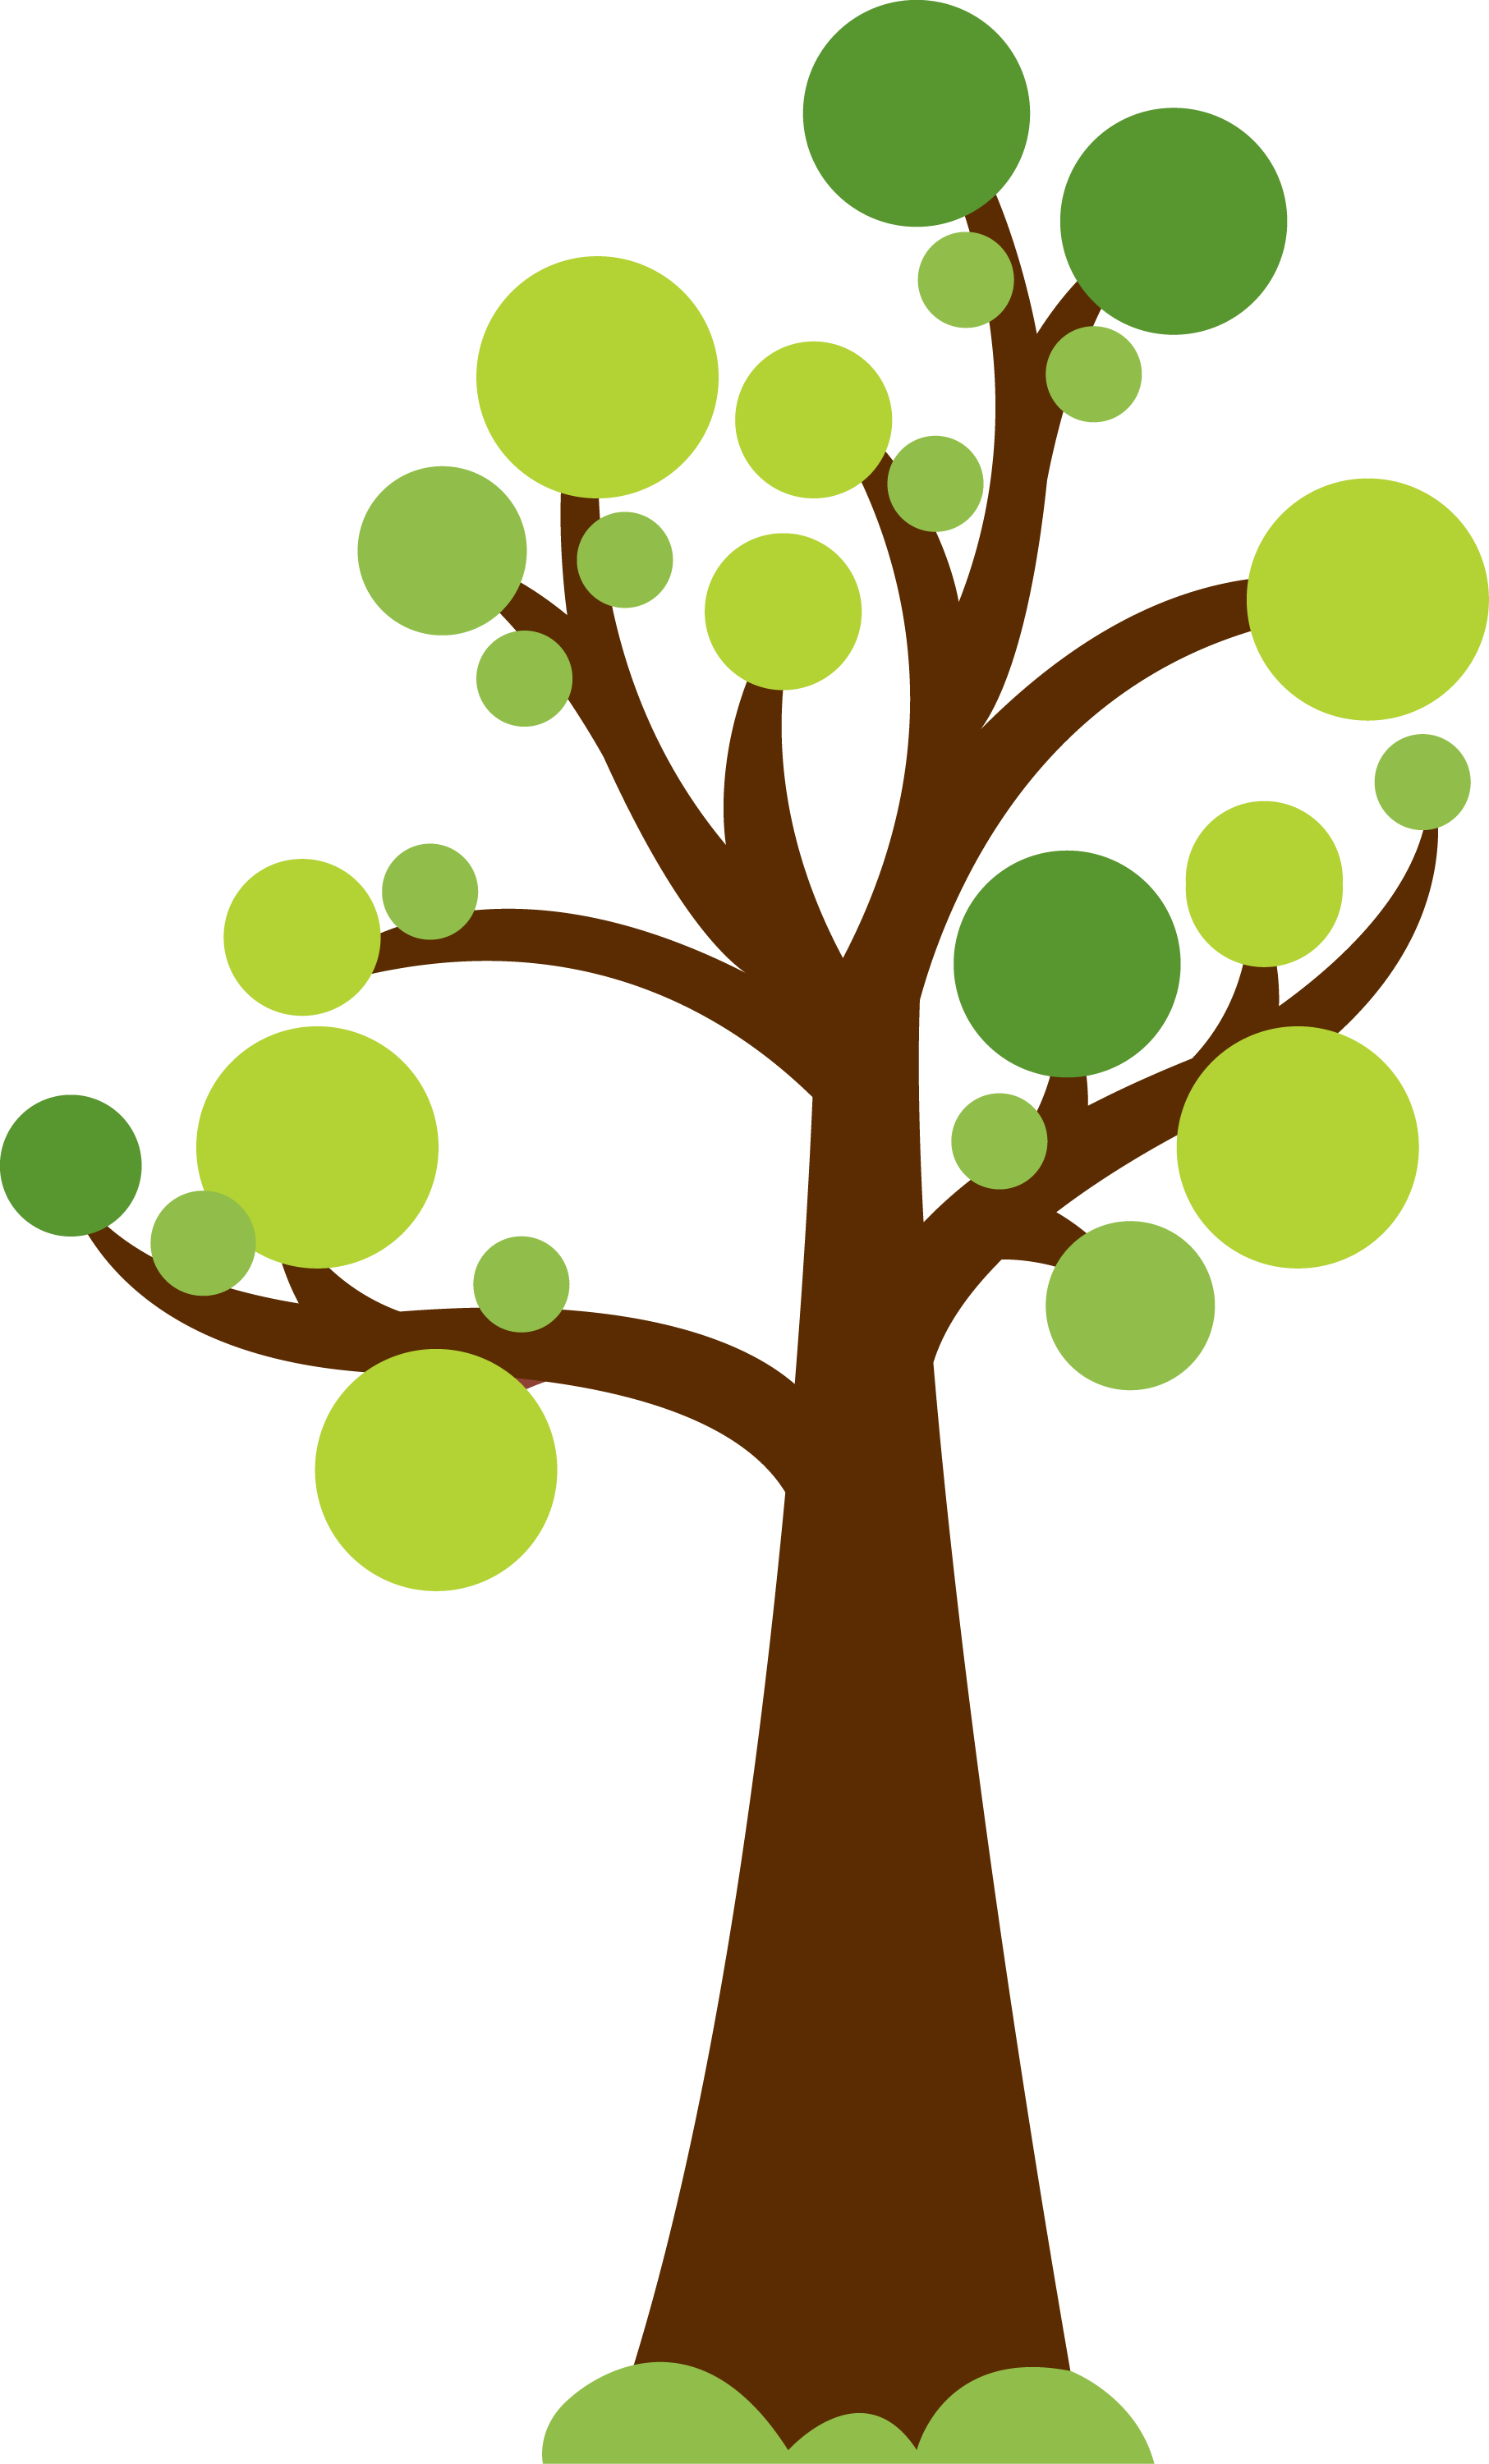 Tree with circles for leaves cute image for summer or for Garden design graphics